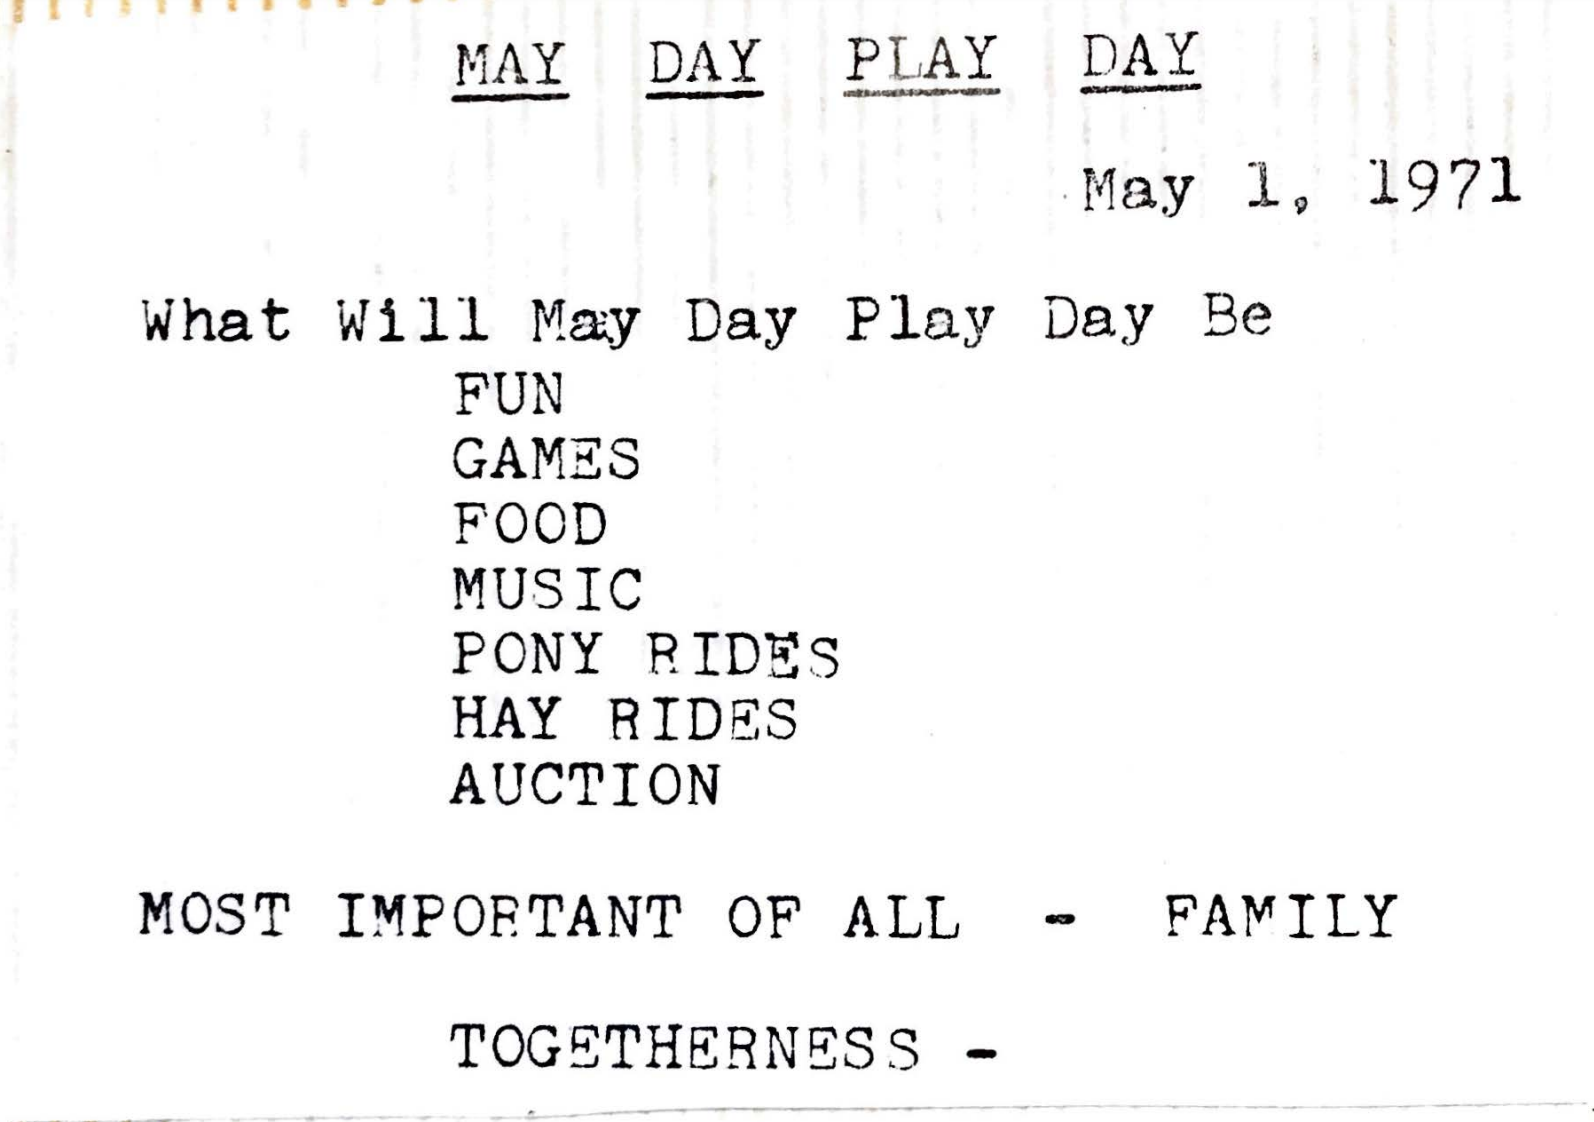 Description of the first May Day Play Day